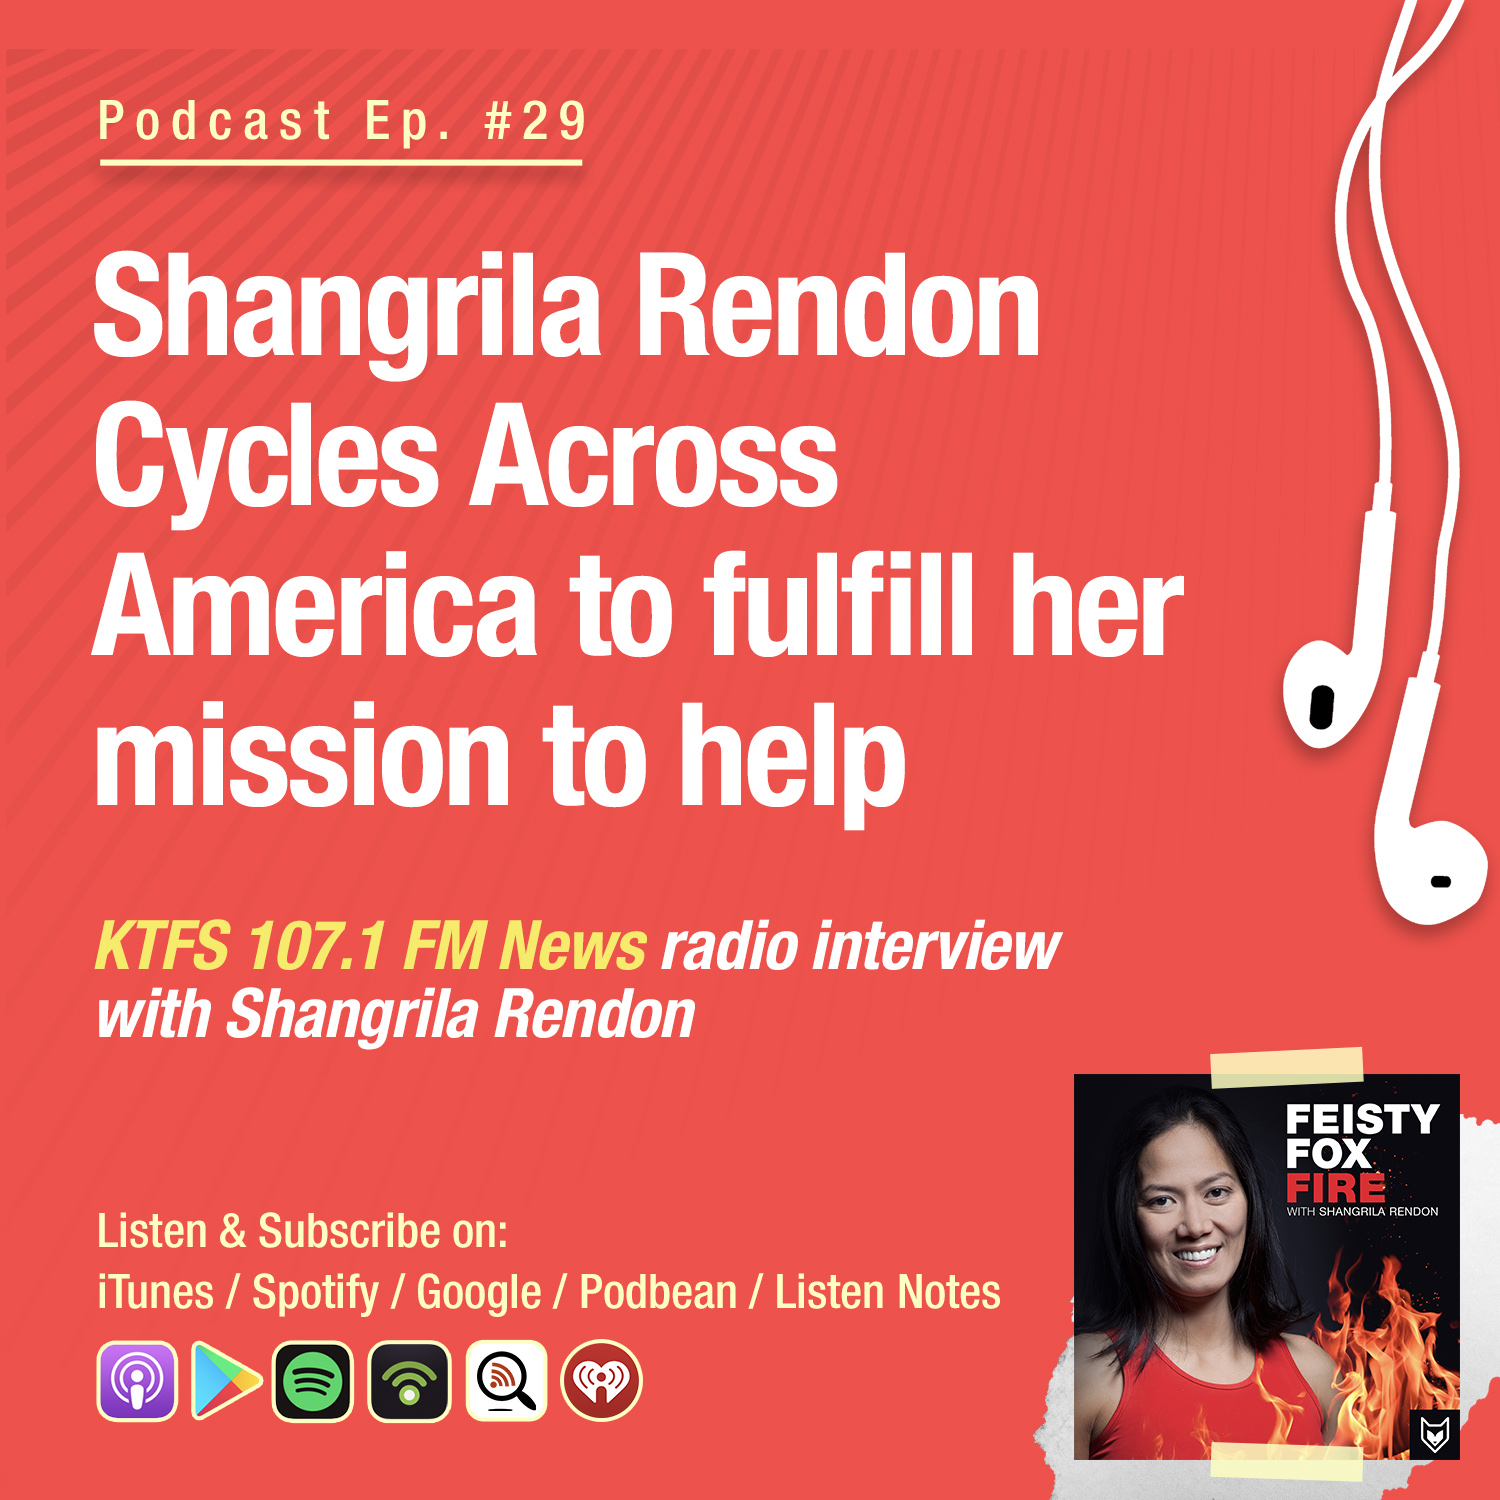 Shangrila Rendon Cycles Across America to fulfill her mission to help - KTFS 107.1 FM News radio interview